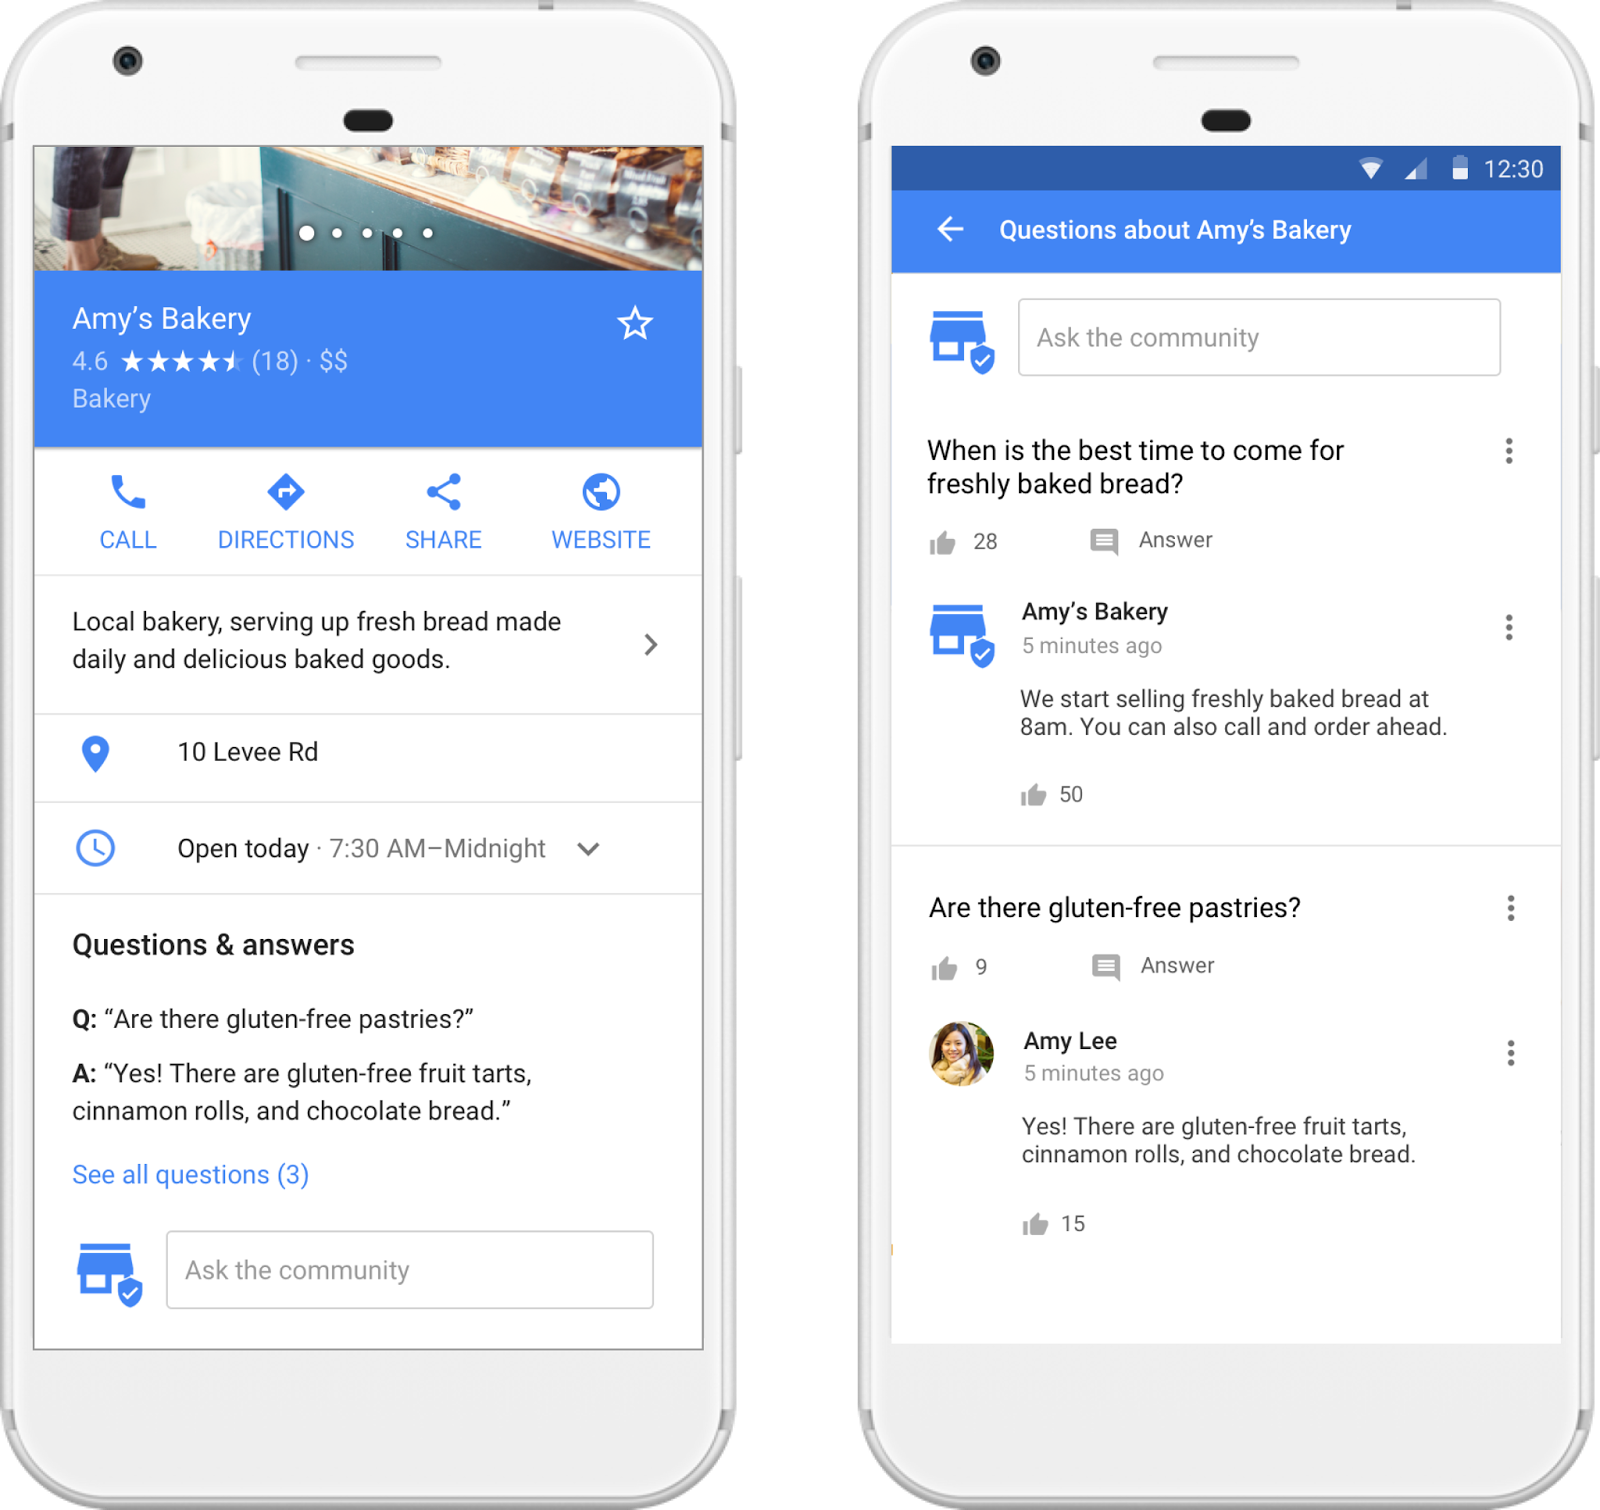 Google local business listing and questions-answer feature